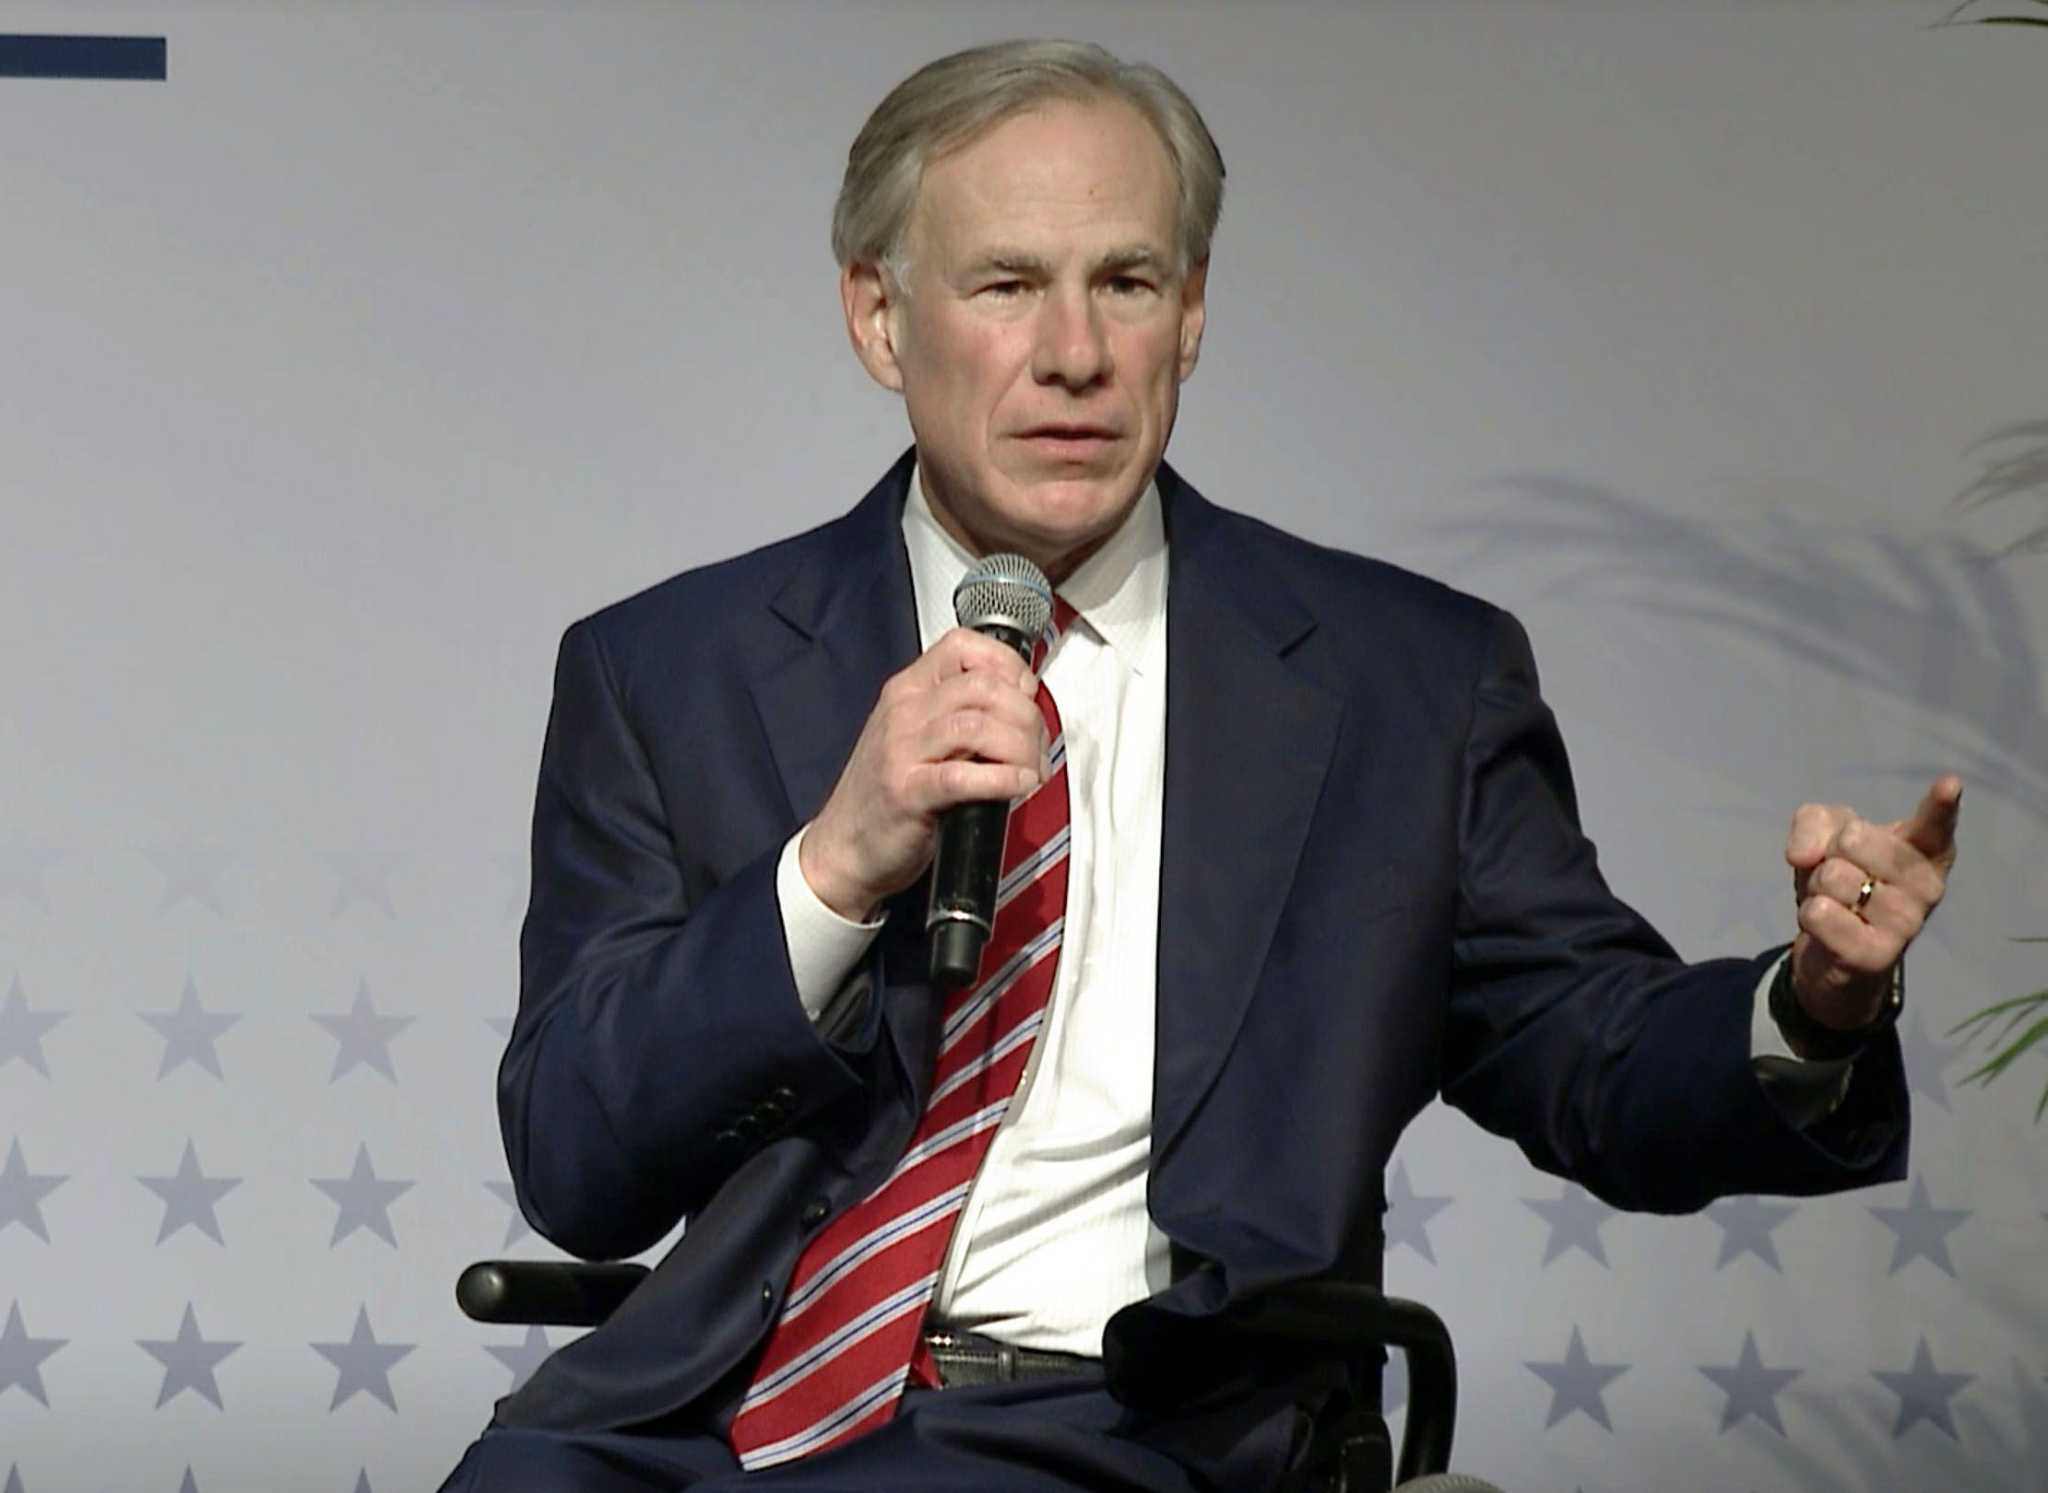 'I'm just stunned': Texas leaders react to Abbott's announcement about border wall